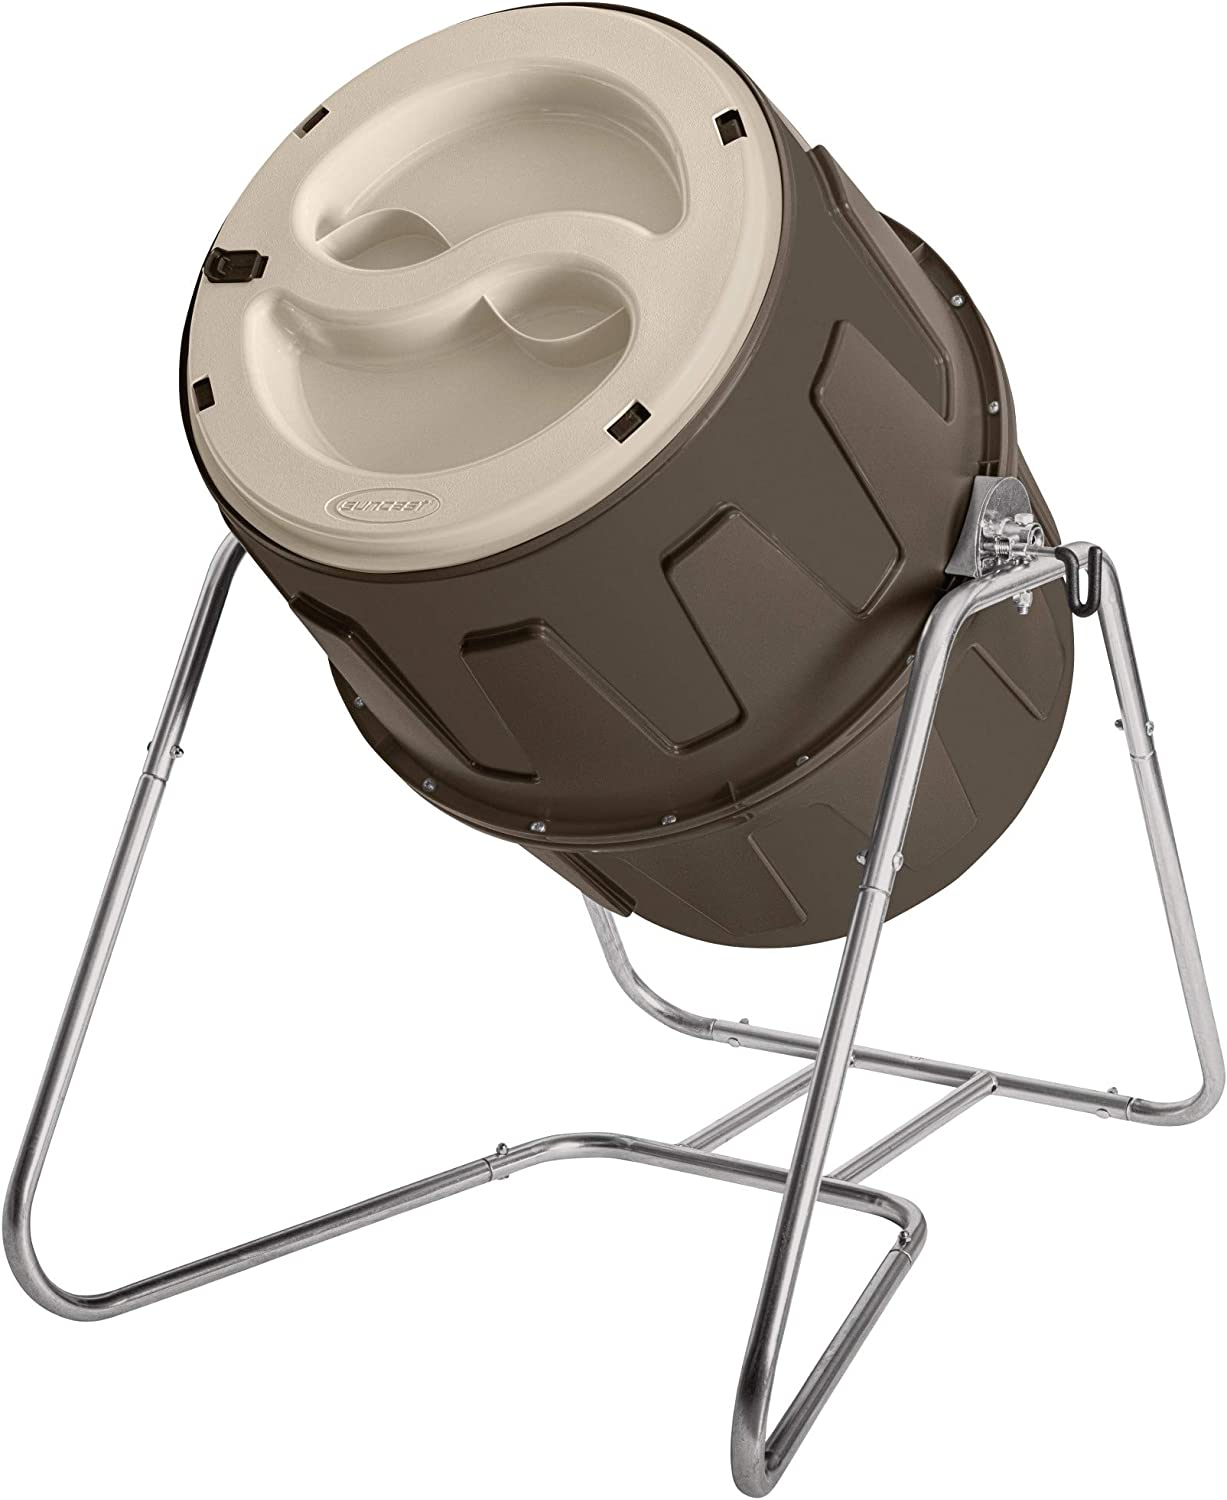 Suncast TCB6800 Tumbling Composter : Best for Keeping Woodland Creatures Out